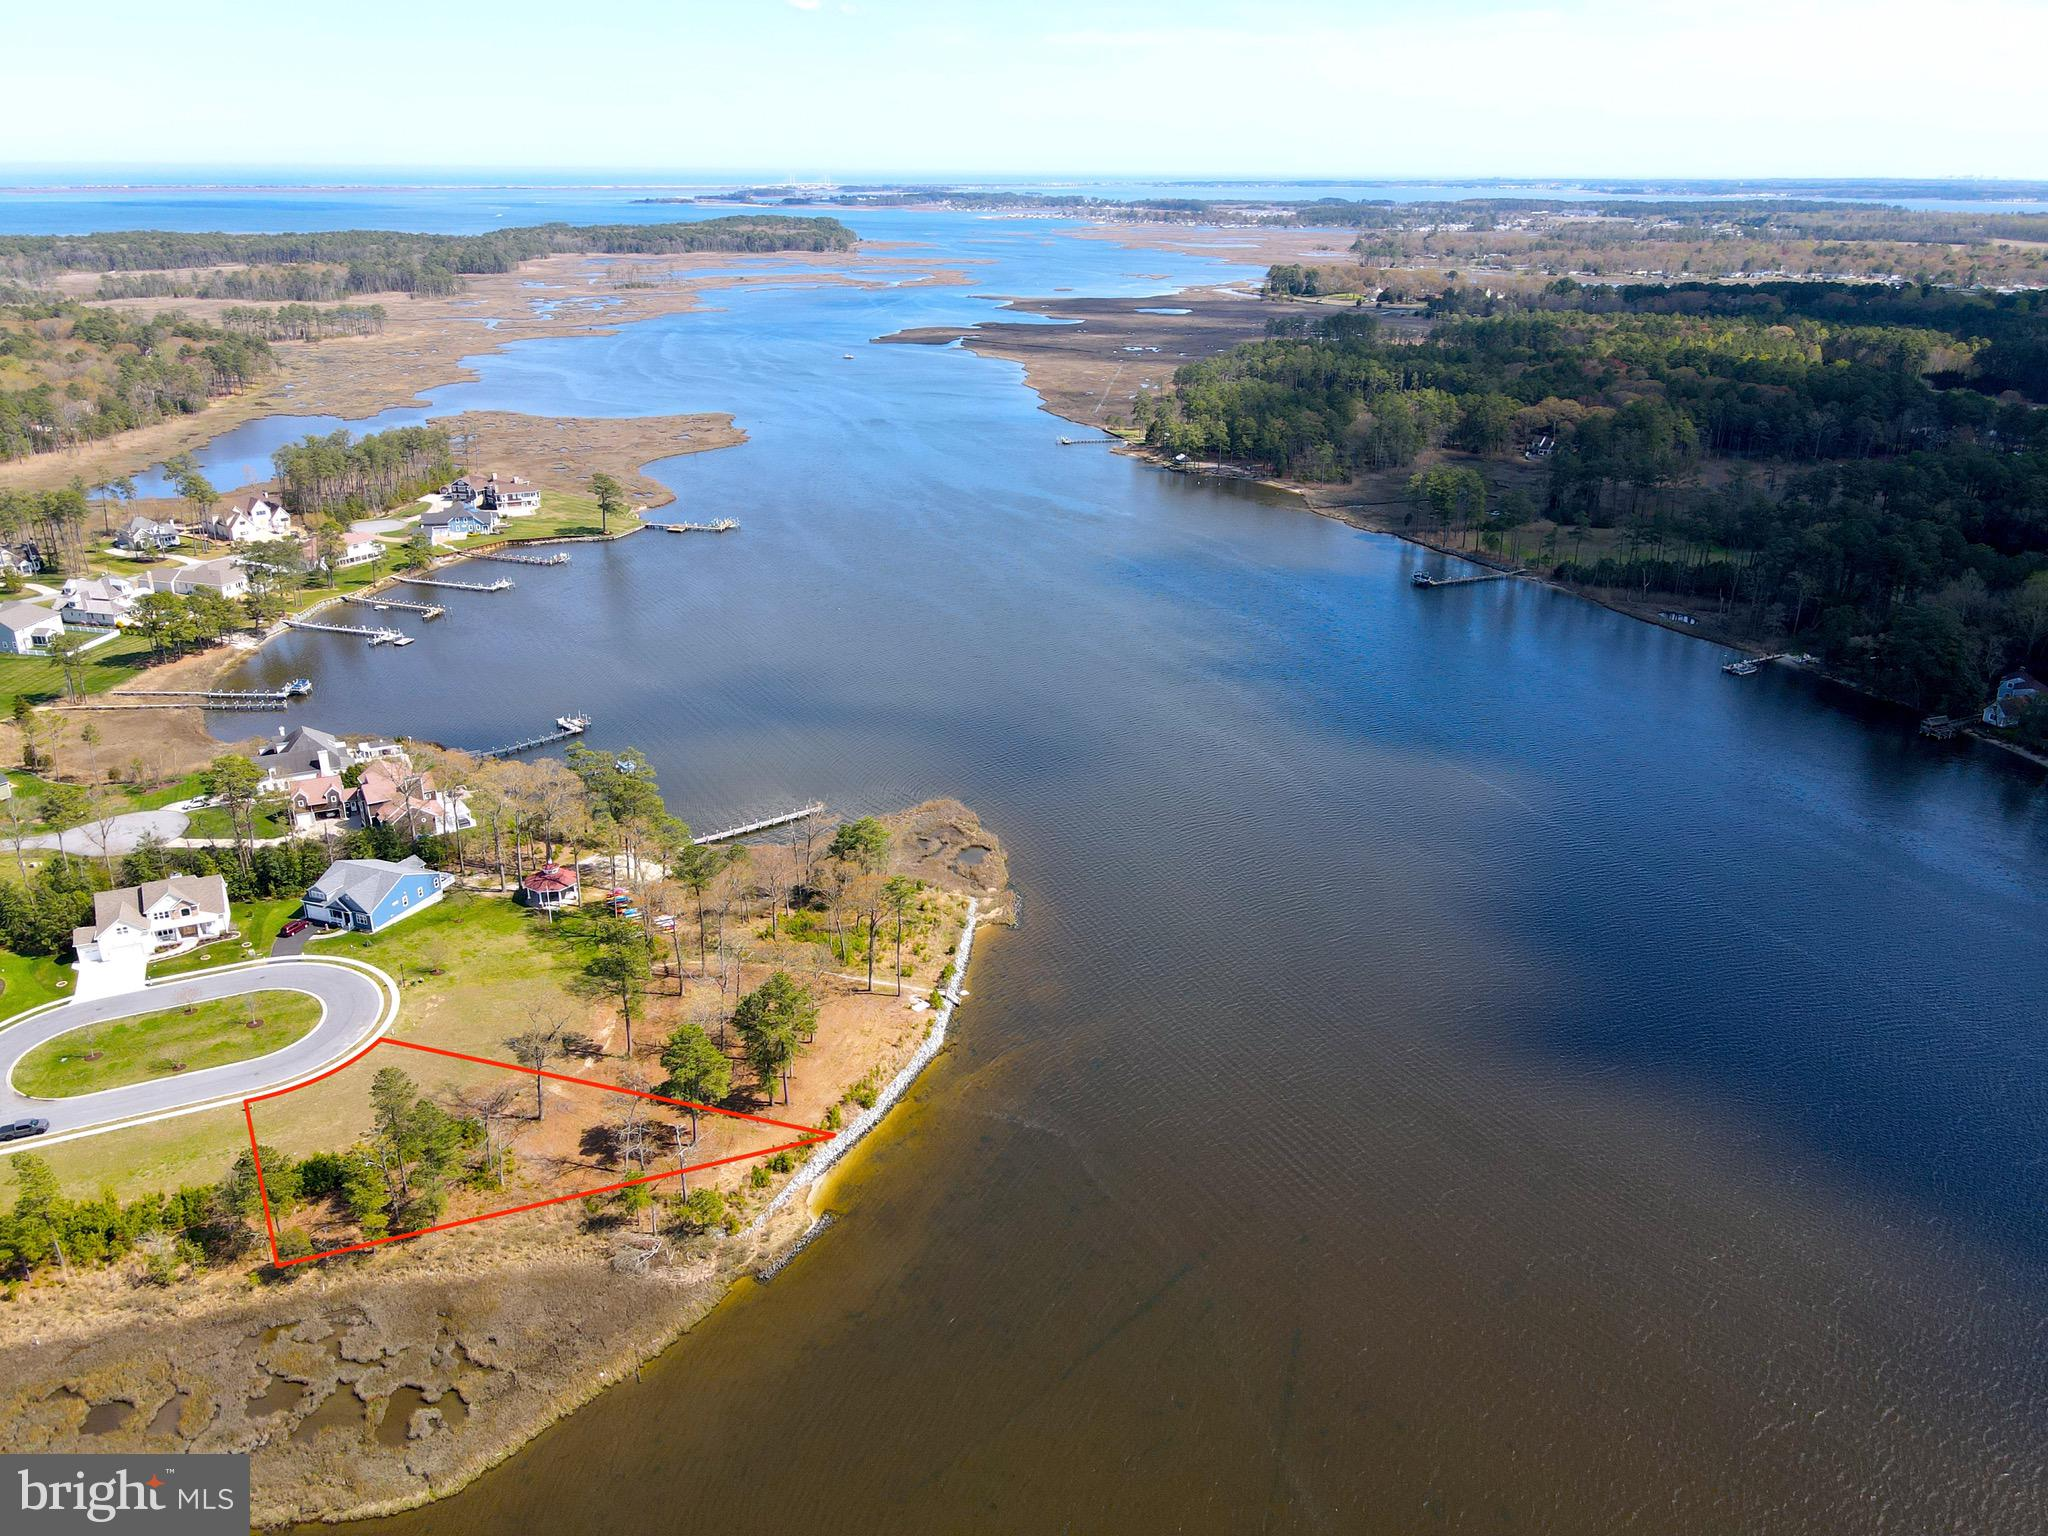 """Incredible water front property located on Herring Creek, in the beautiful community of Bay Pointe! This to-be-built**** lot-home package features the Hannah Model, by Sussex County Custom Home Builder of the Year, Capstone Homes. This two story, 4 bed, 3.5 bath home incorporates a first floor owners suite along with a two story open great room to take advantage of the breathtaking views down Herring Creek! Price includes all """"On Your Lot Standards"""" (sheet attached), along with $20,000 in builder upgrades for the purchaser to personally allocate. This package will not last long, be sure to call and schedule your appointment and tour a Capstone model!"""